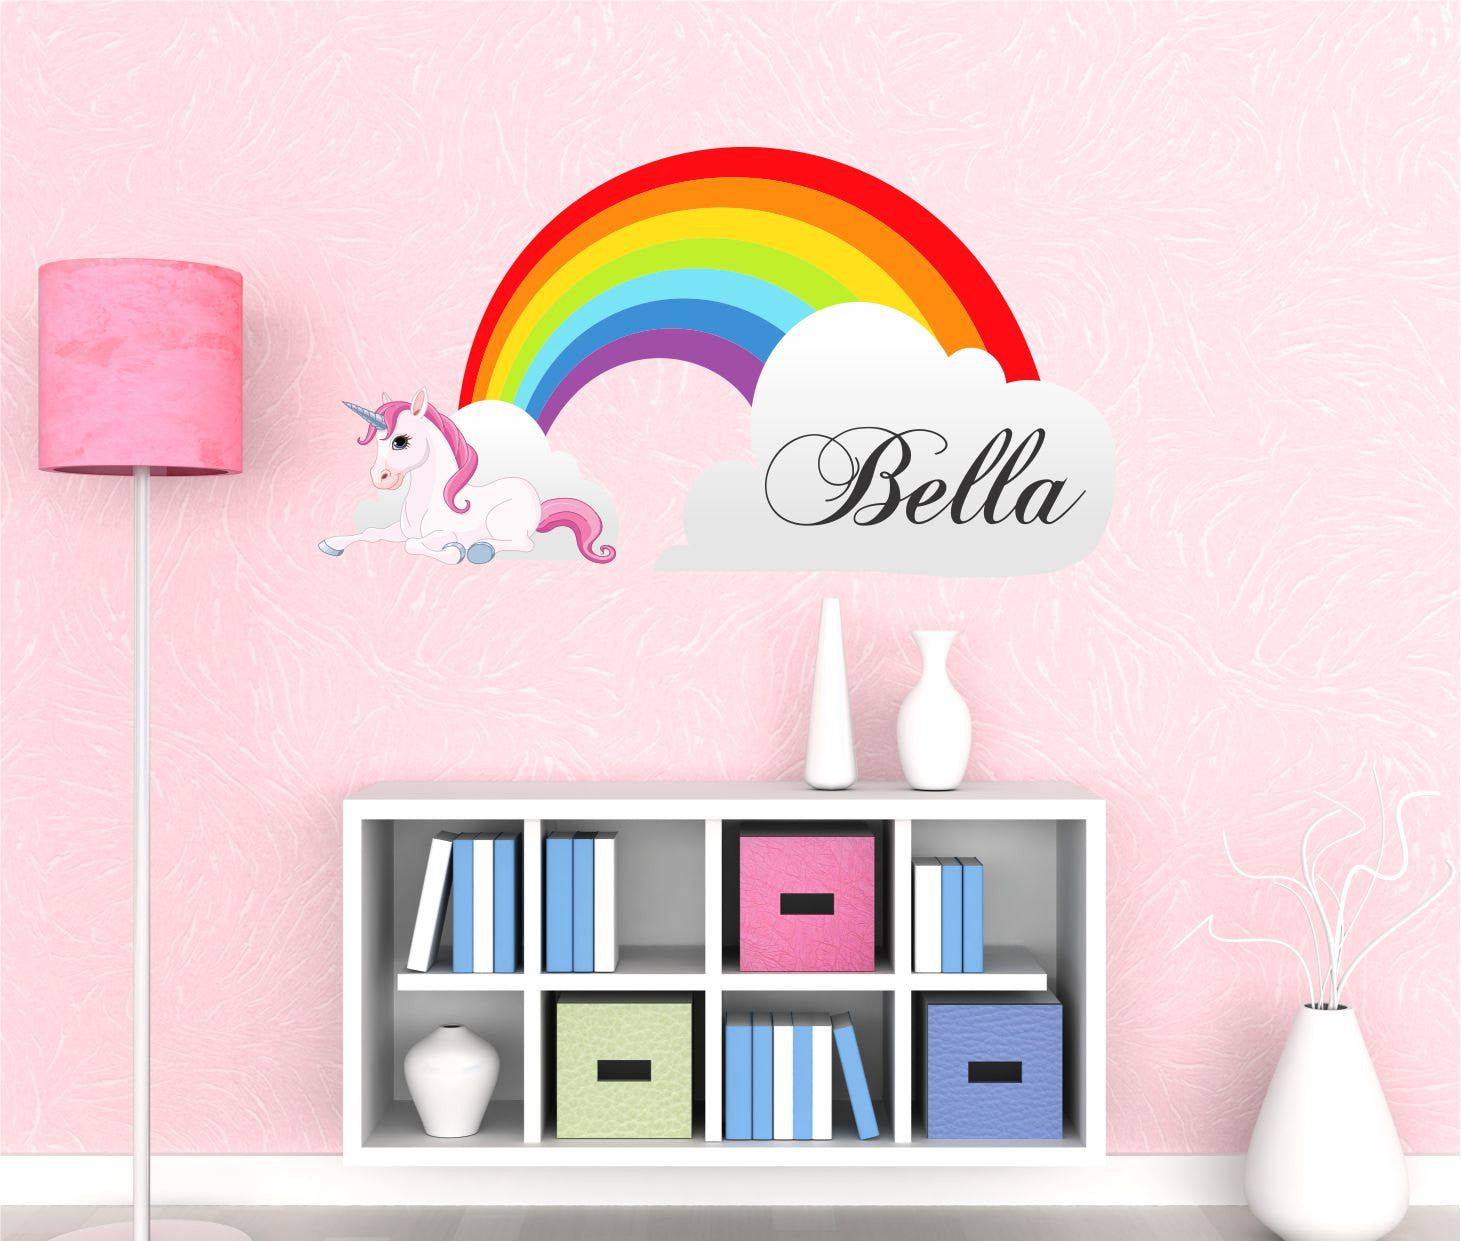 Girls name rainbow wall decal by decor designs decals unicorn decals girls name rainbow wall decal by decor designs decals unicorn decals rainbow decals amipublicfo Images